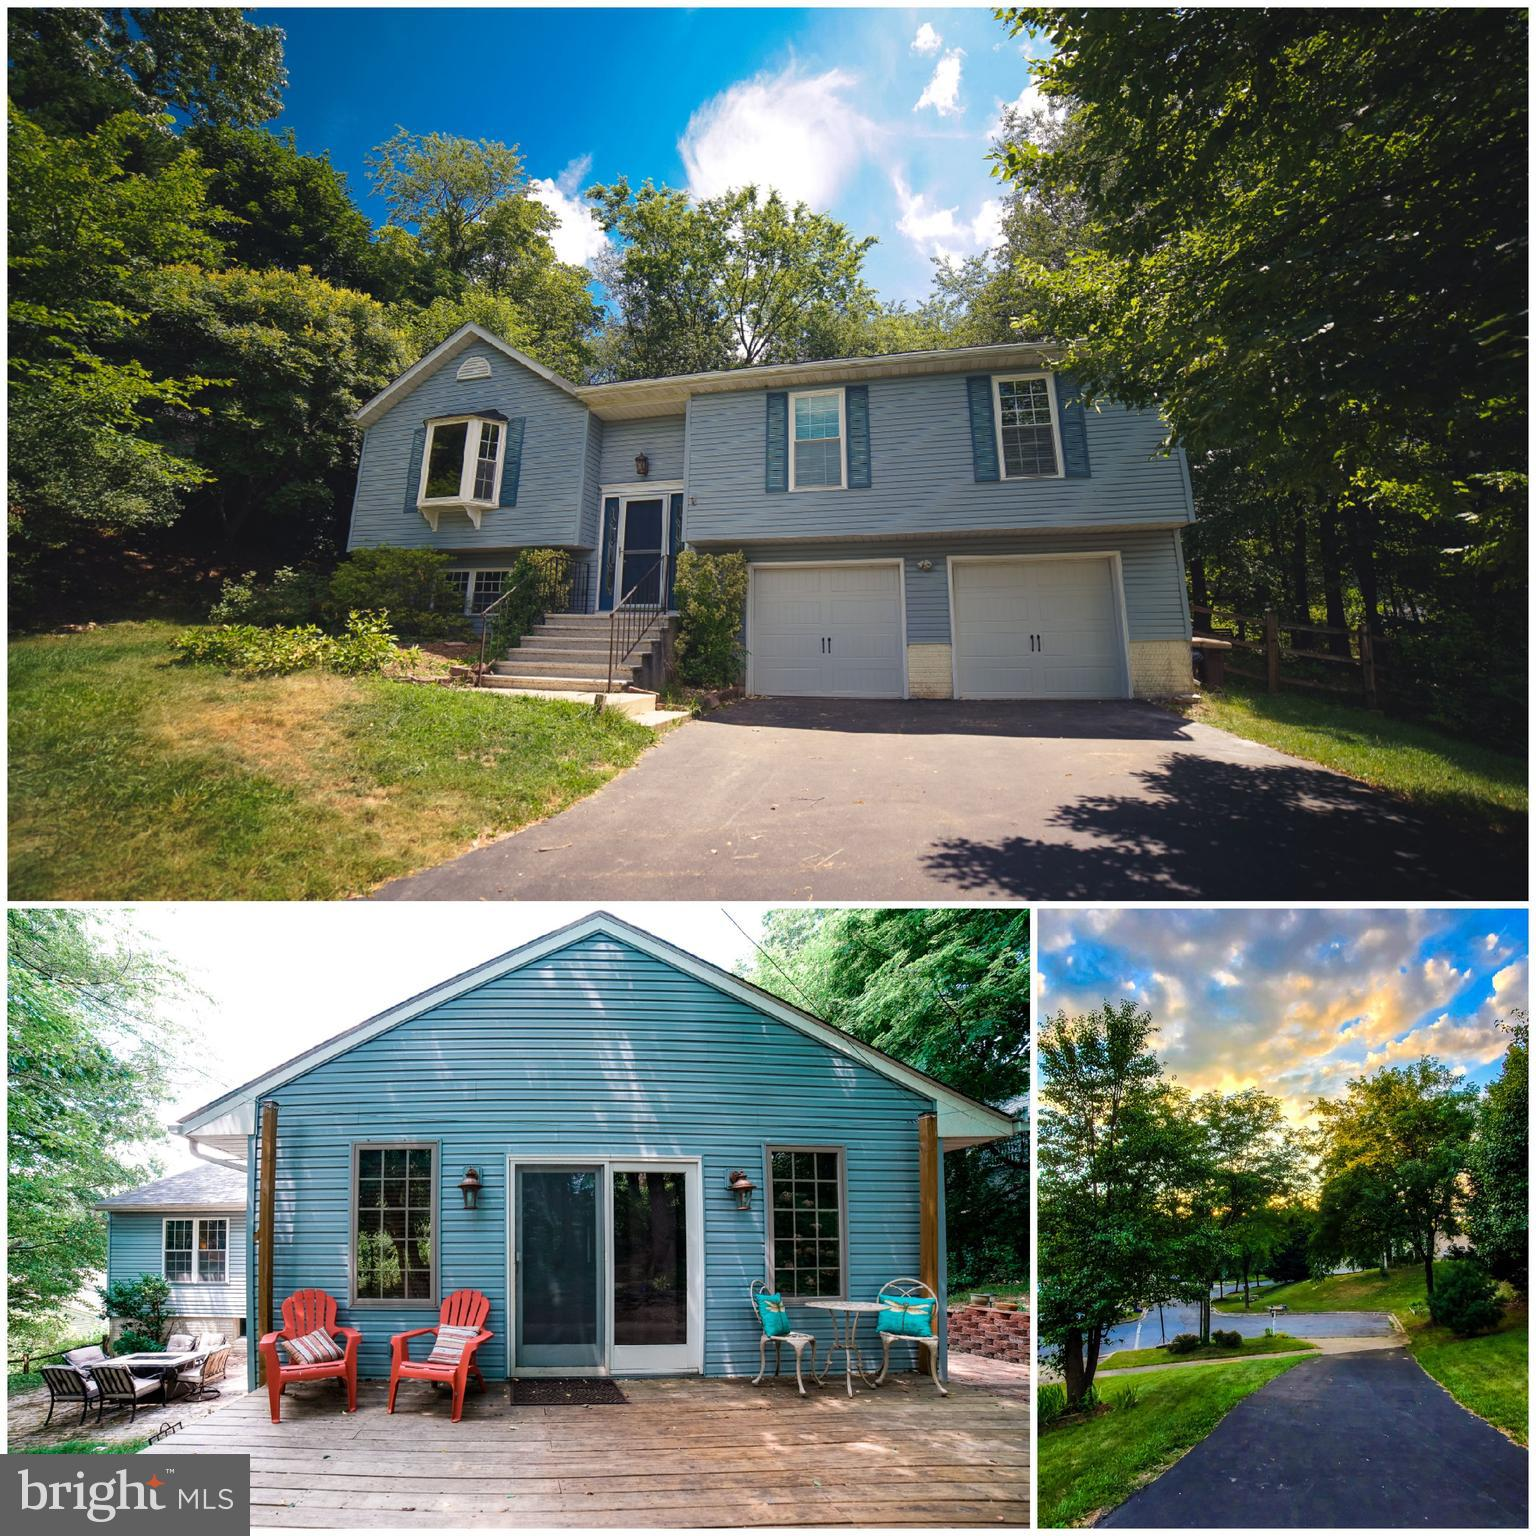 Seclusion, Relaxation, Privacy, Comfort; Those are some of the features that 614 Cedarbrook Ct has i